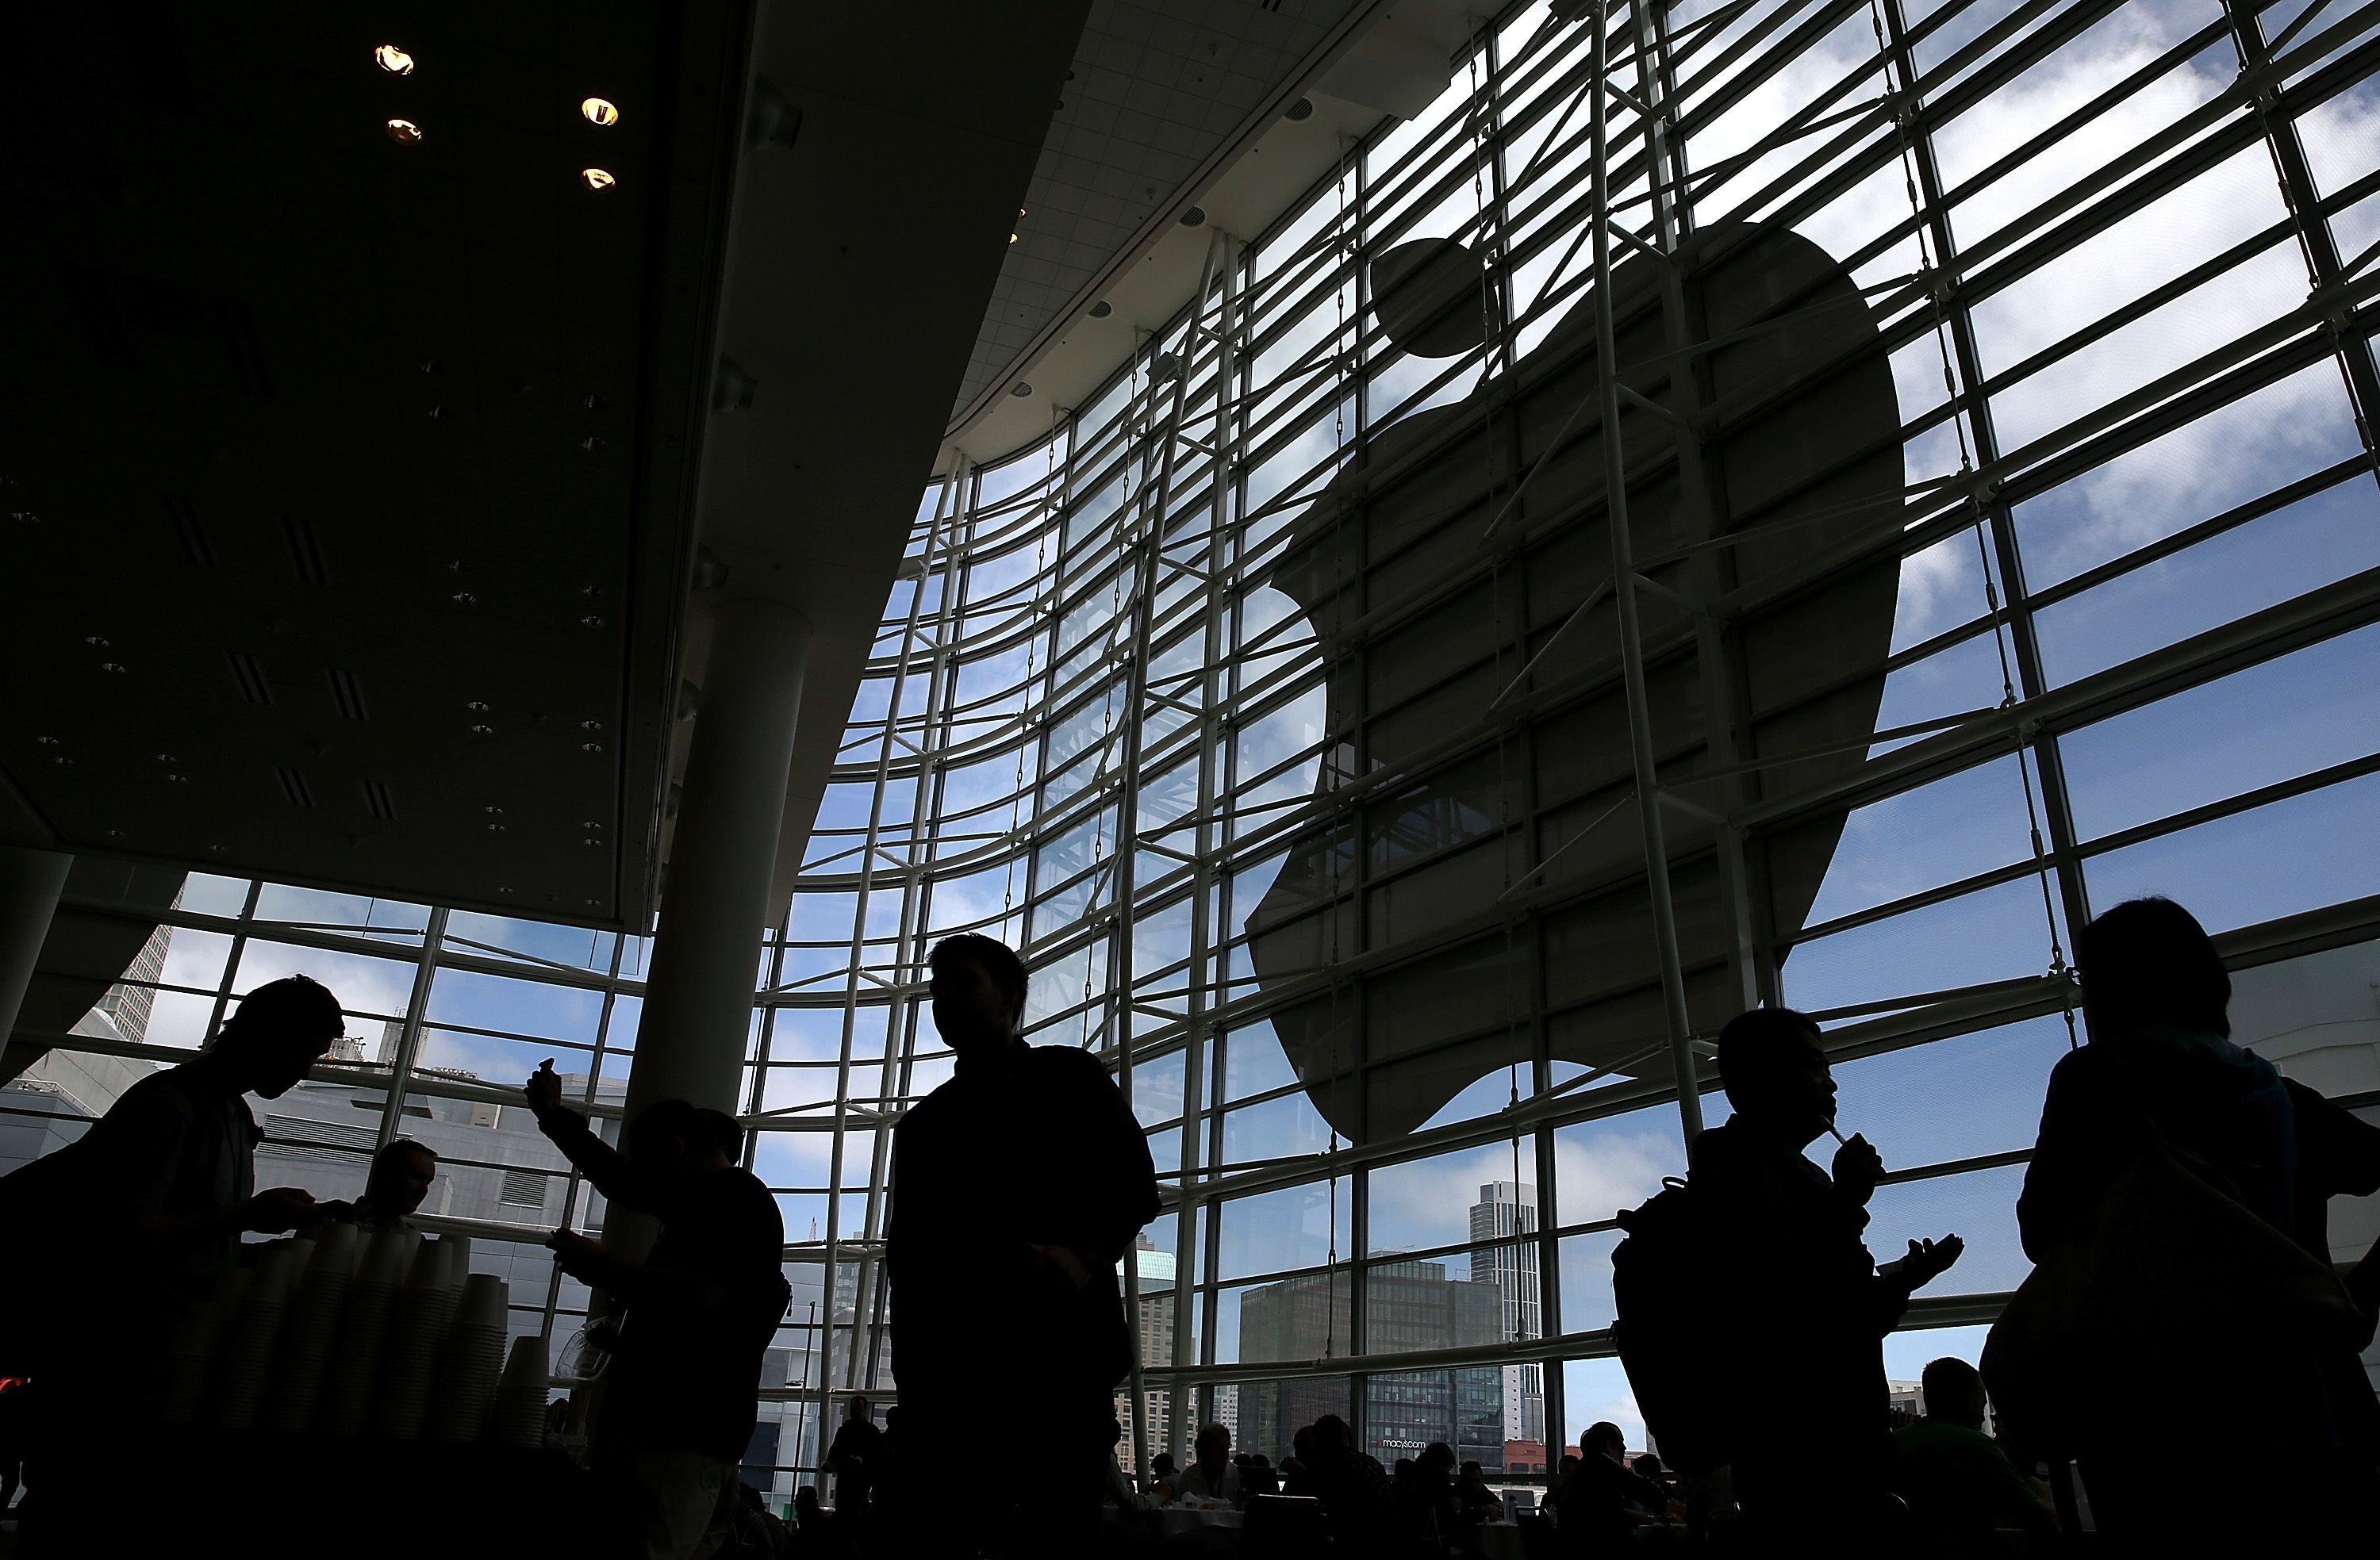 Morgan Stanley on Apple: 'Attractive setup into earnings'